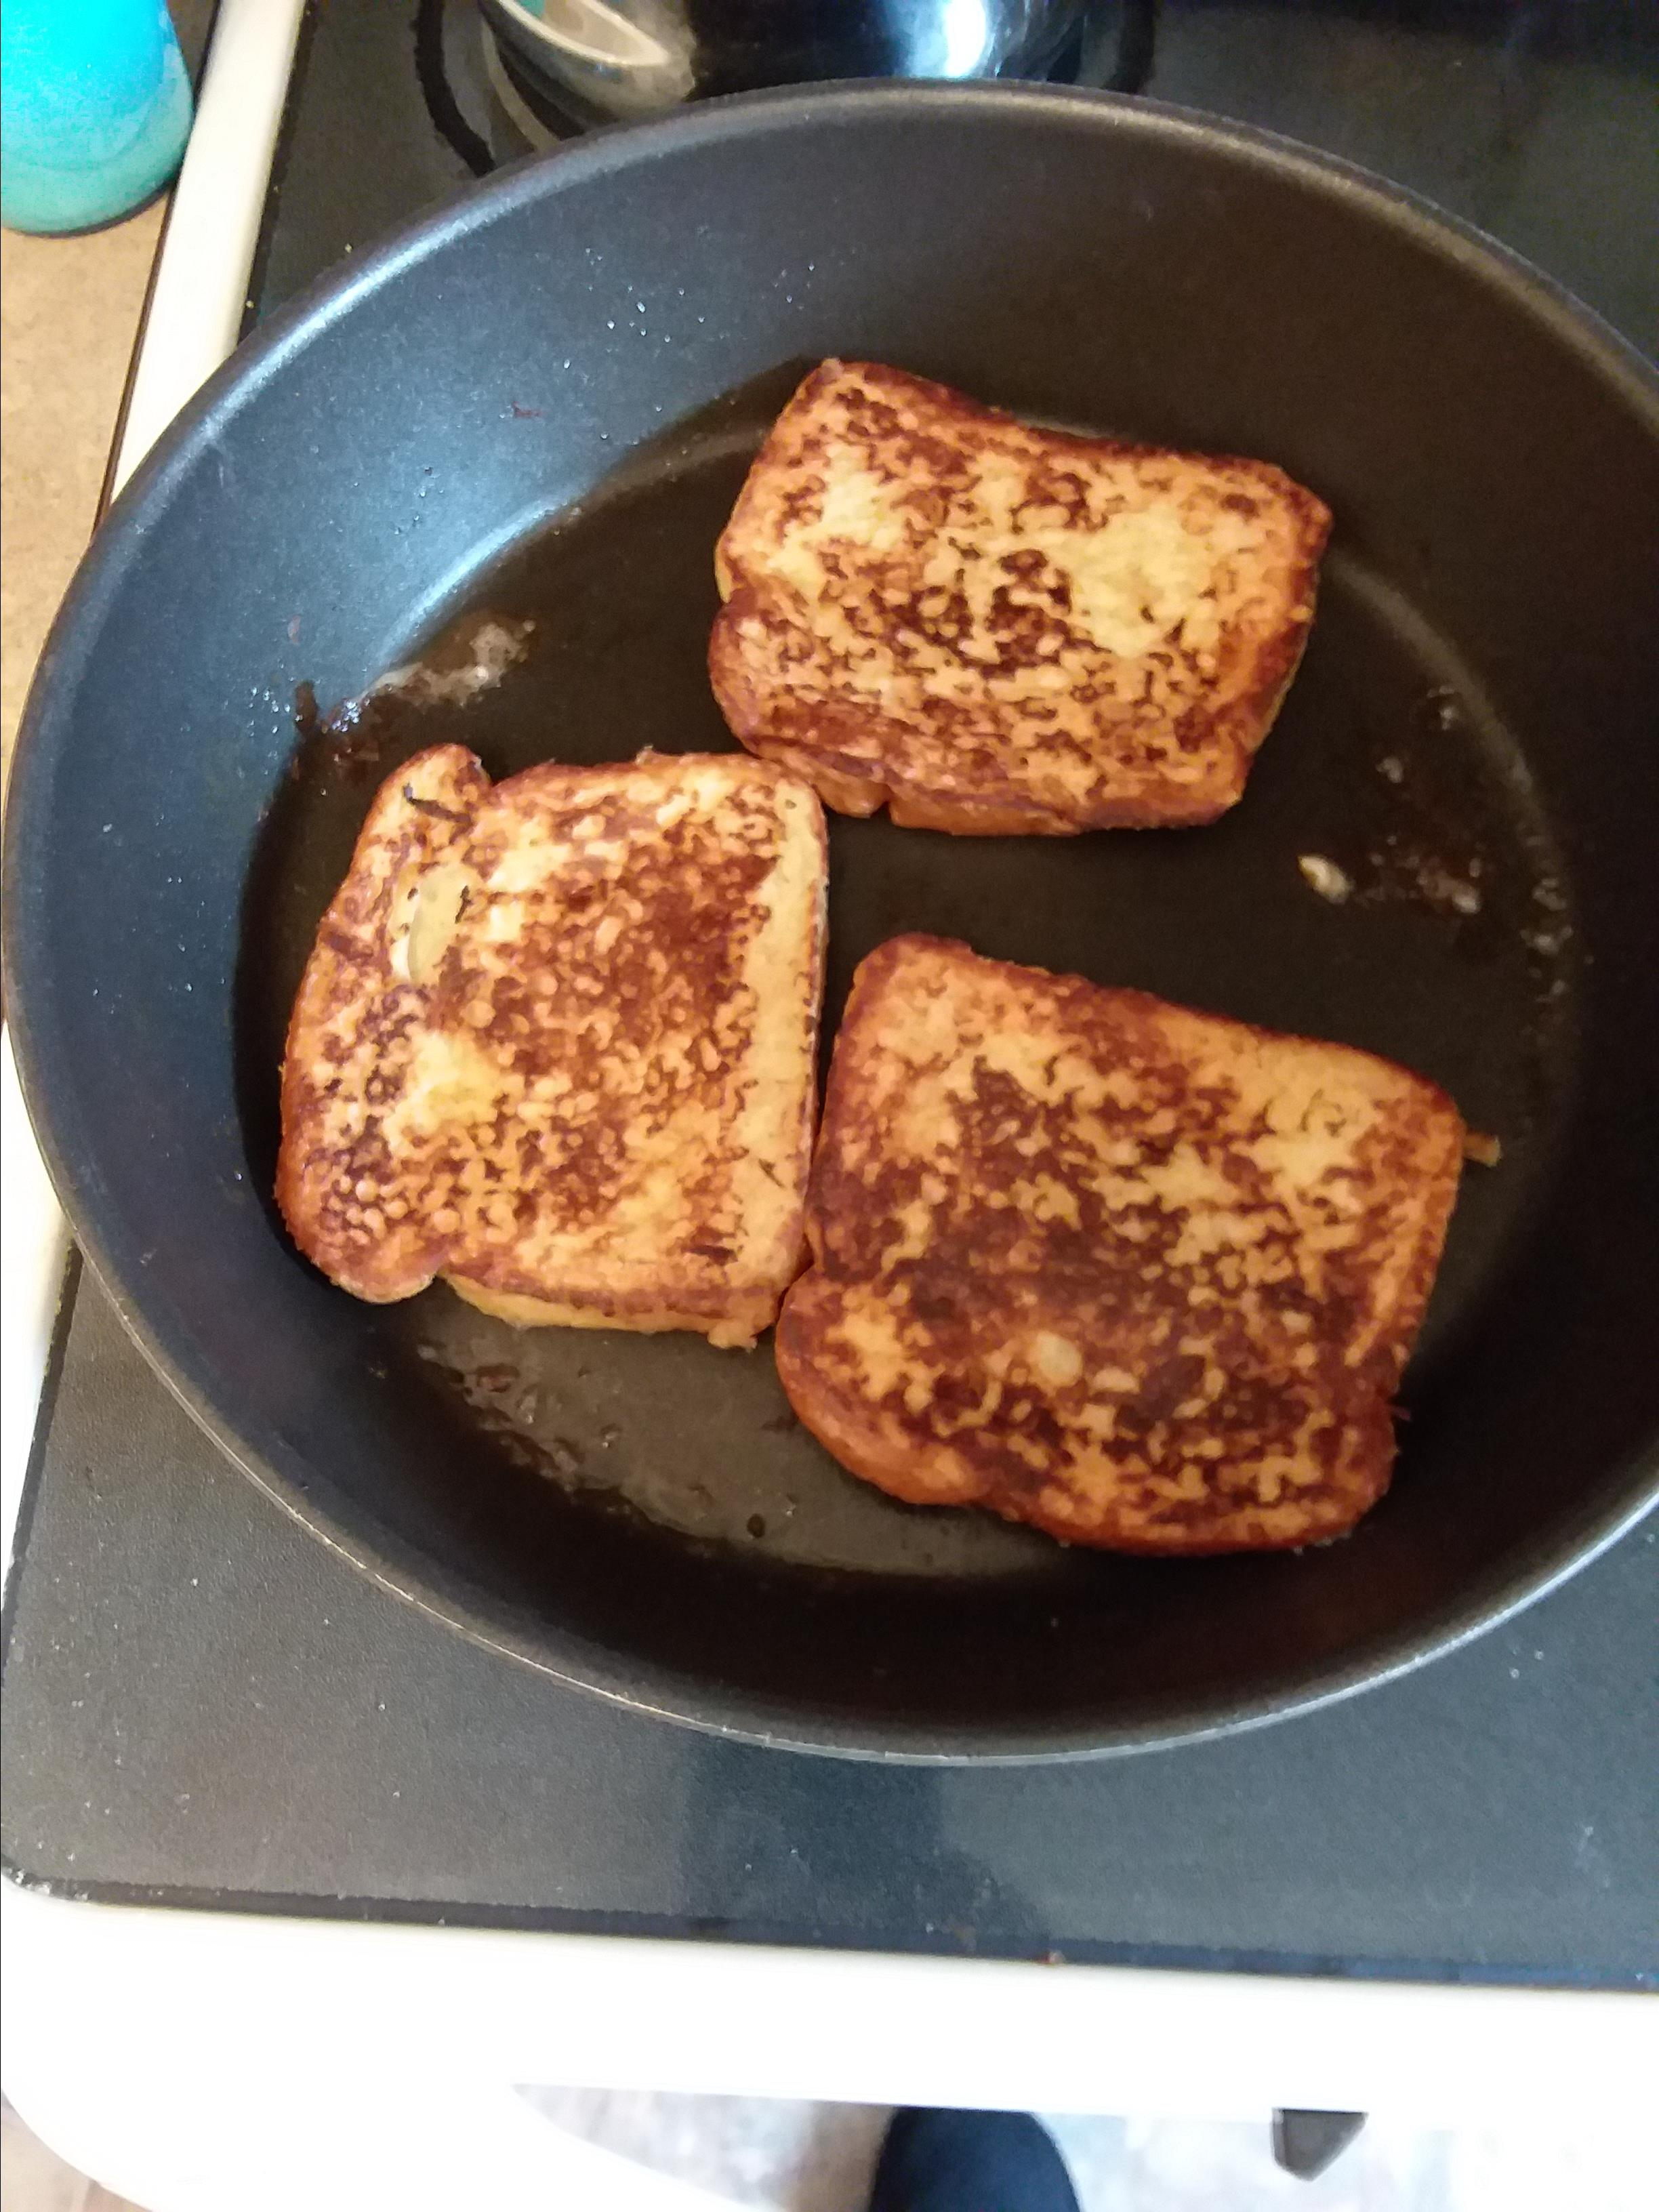 Buttermilk French Toast with Maple Syrup Tyrone L. Hough